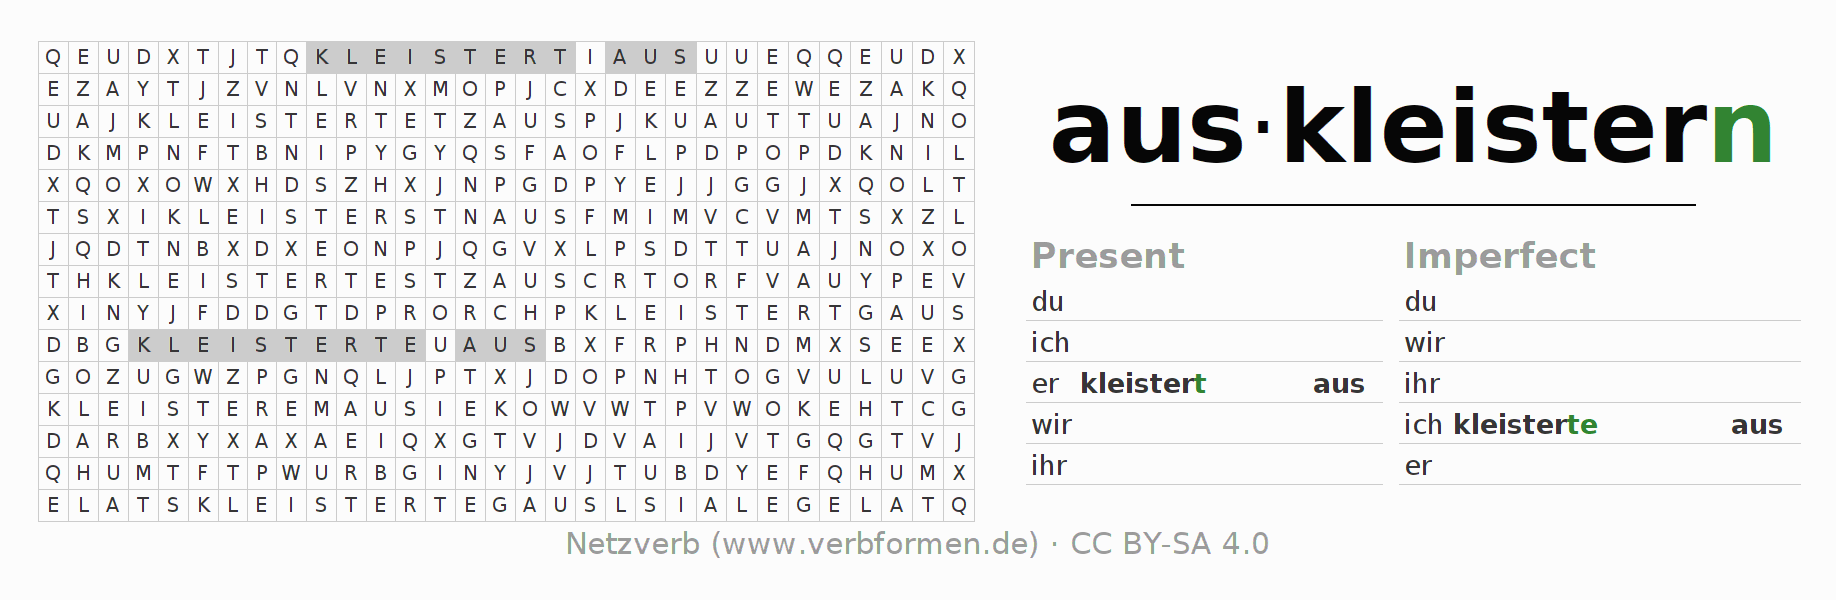 Word search puzzle for the conjugation of the verb auskleistern